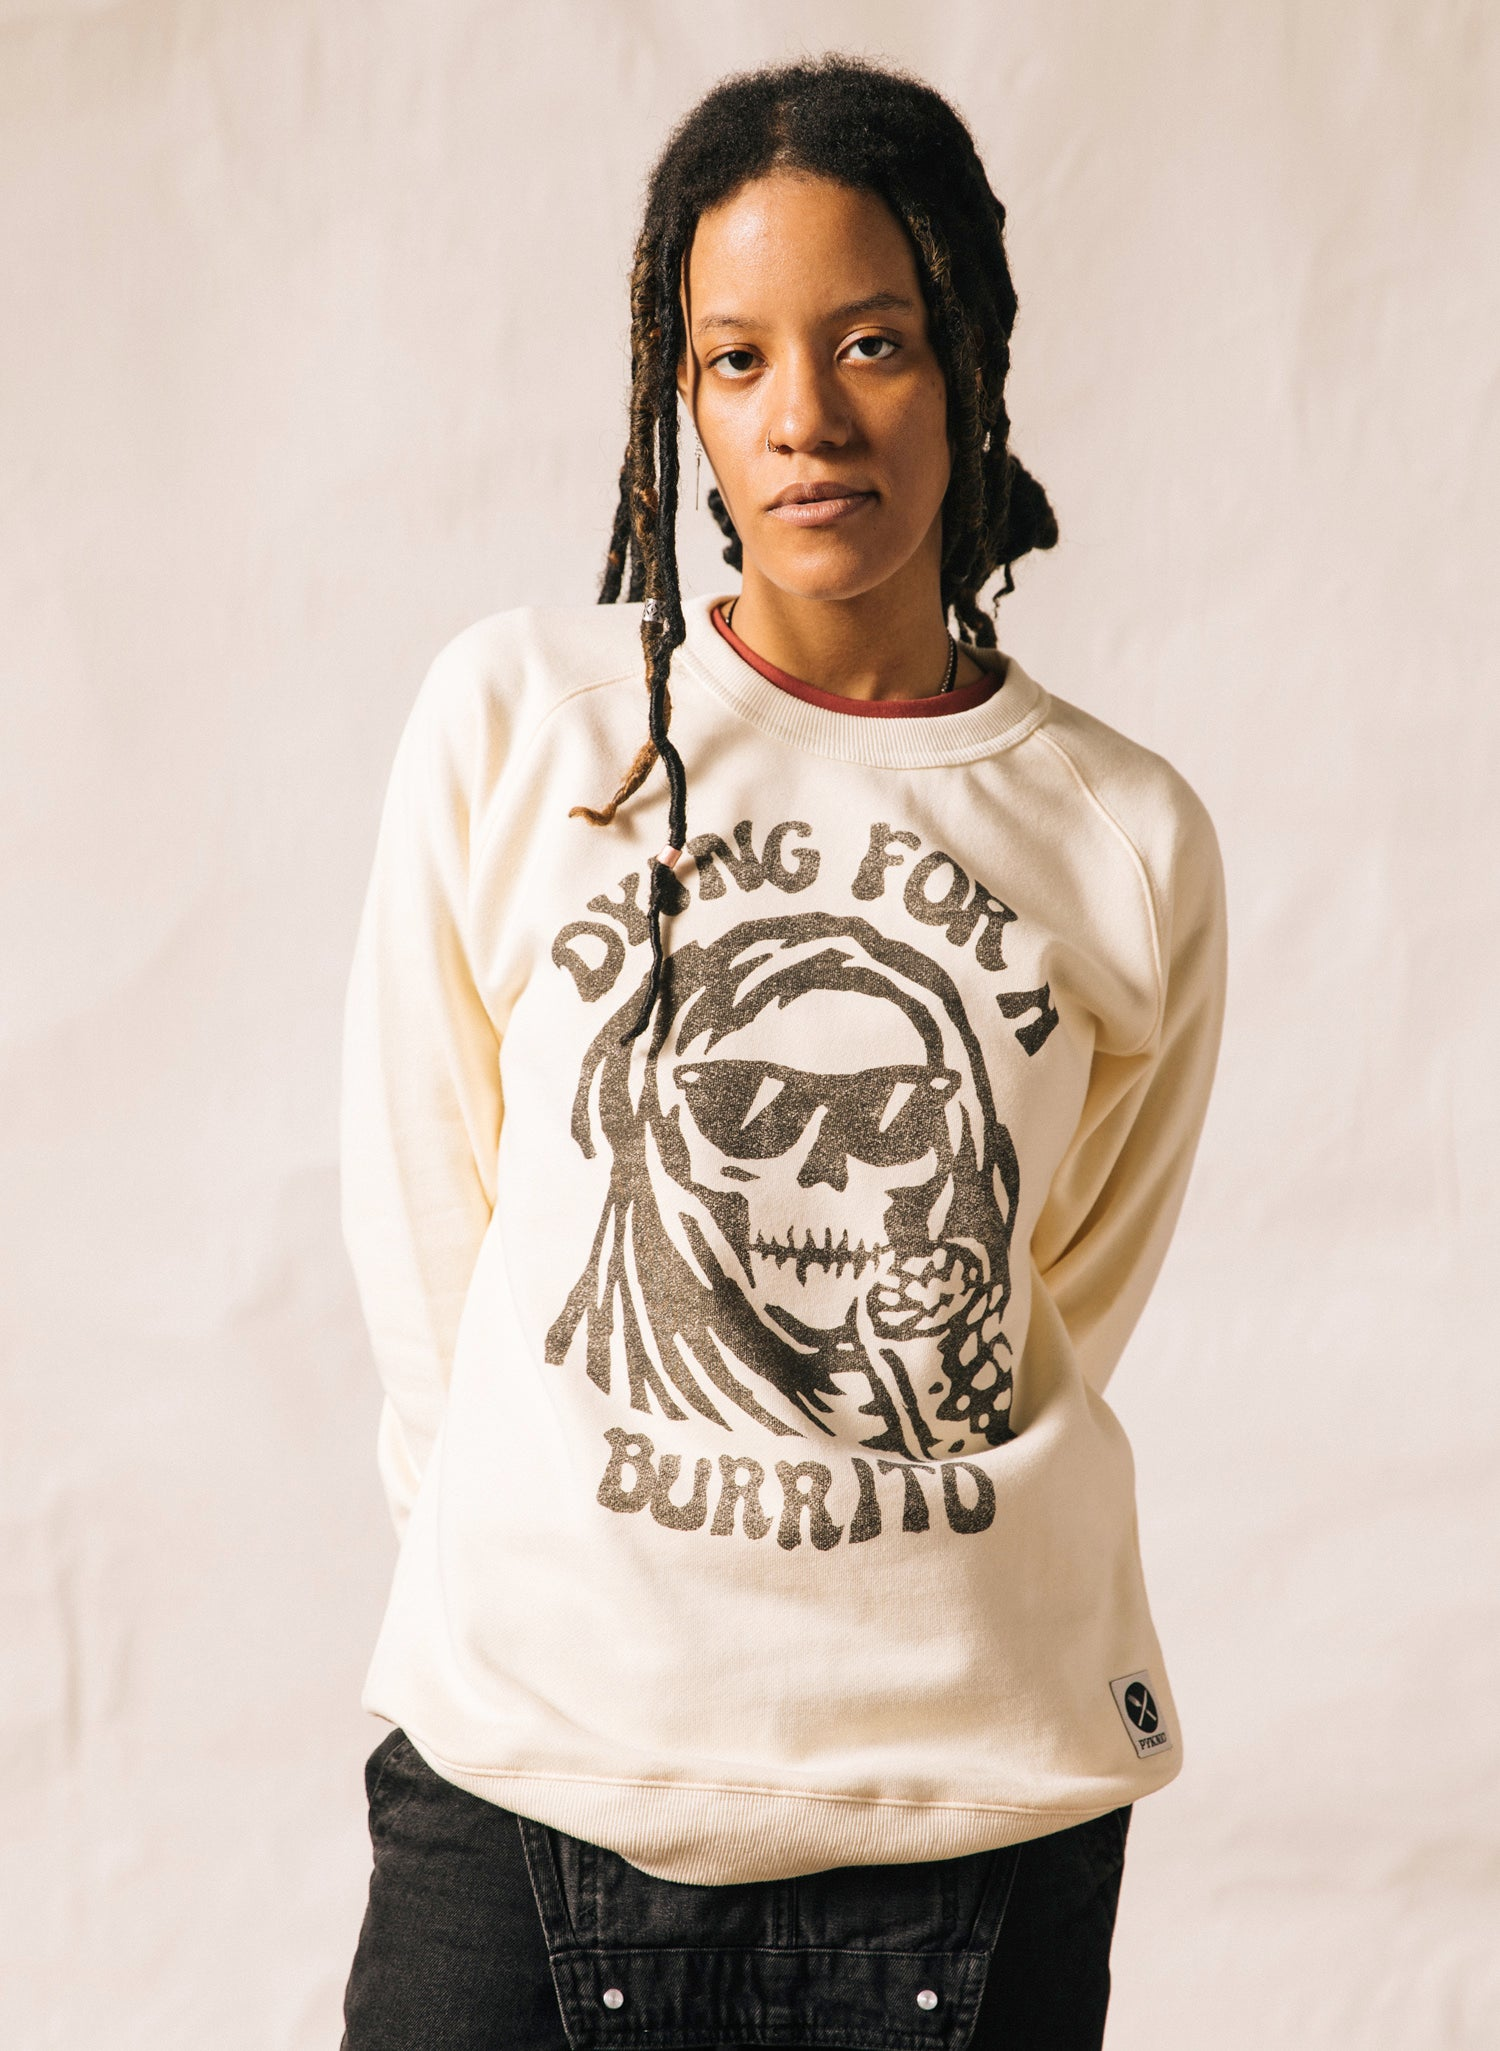 Dying for a Burrito Skull Foodie Sustainable Hemp Organic Cotton Pullover Crewneck Sweatshirt Chipotle